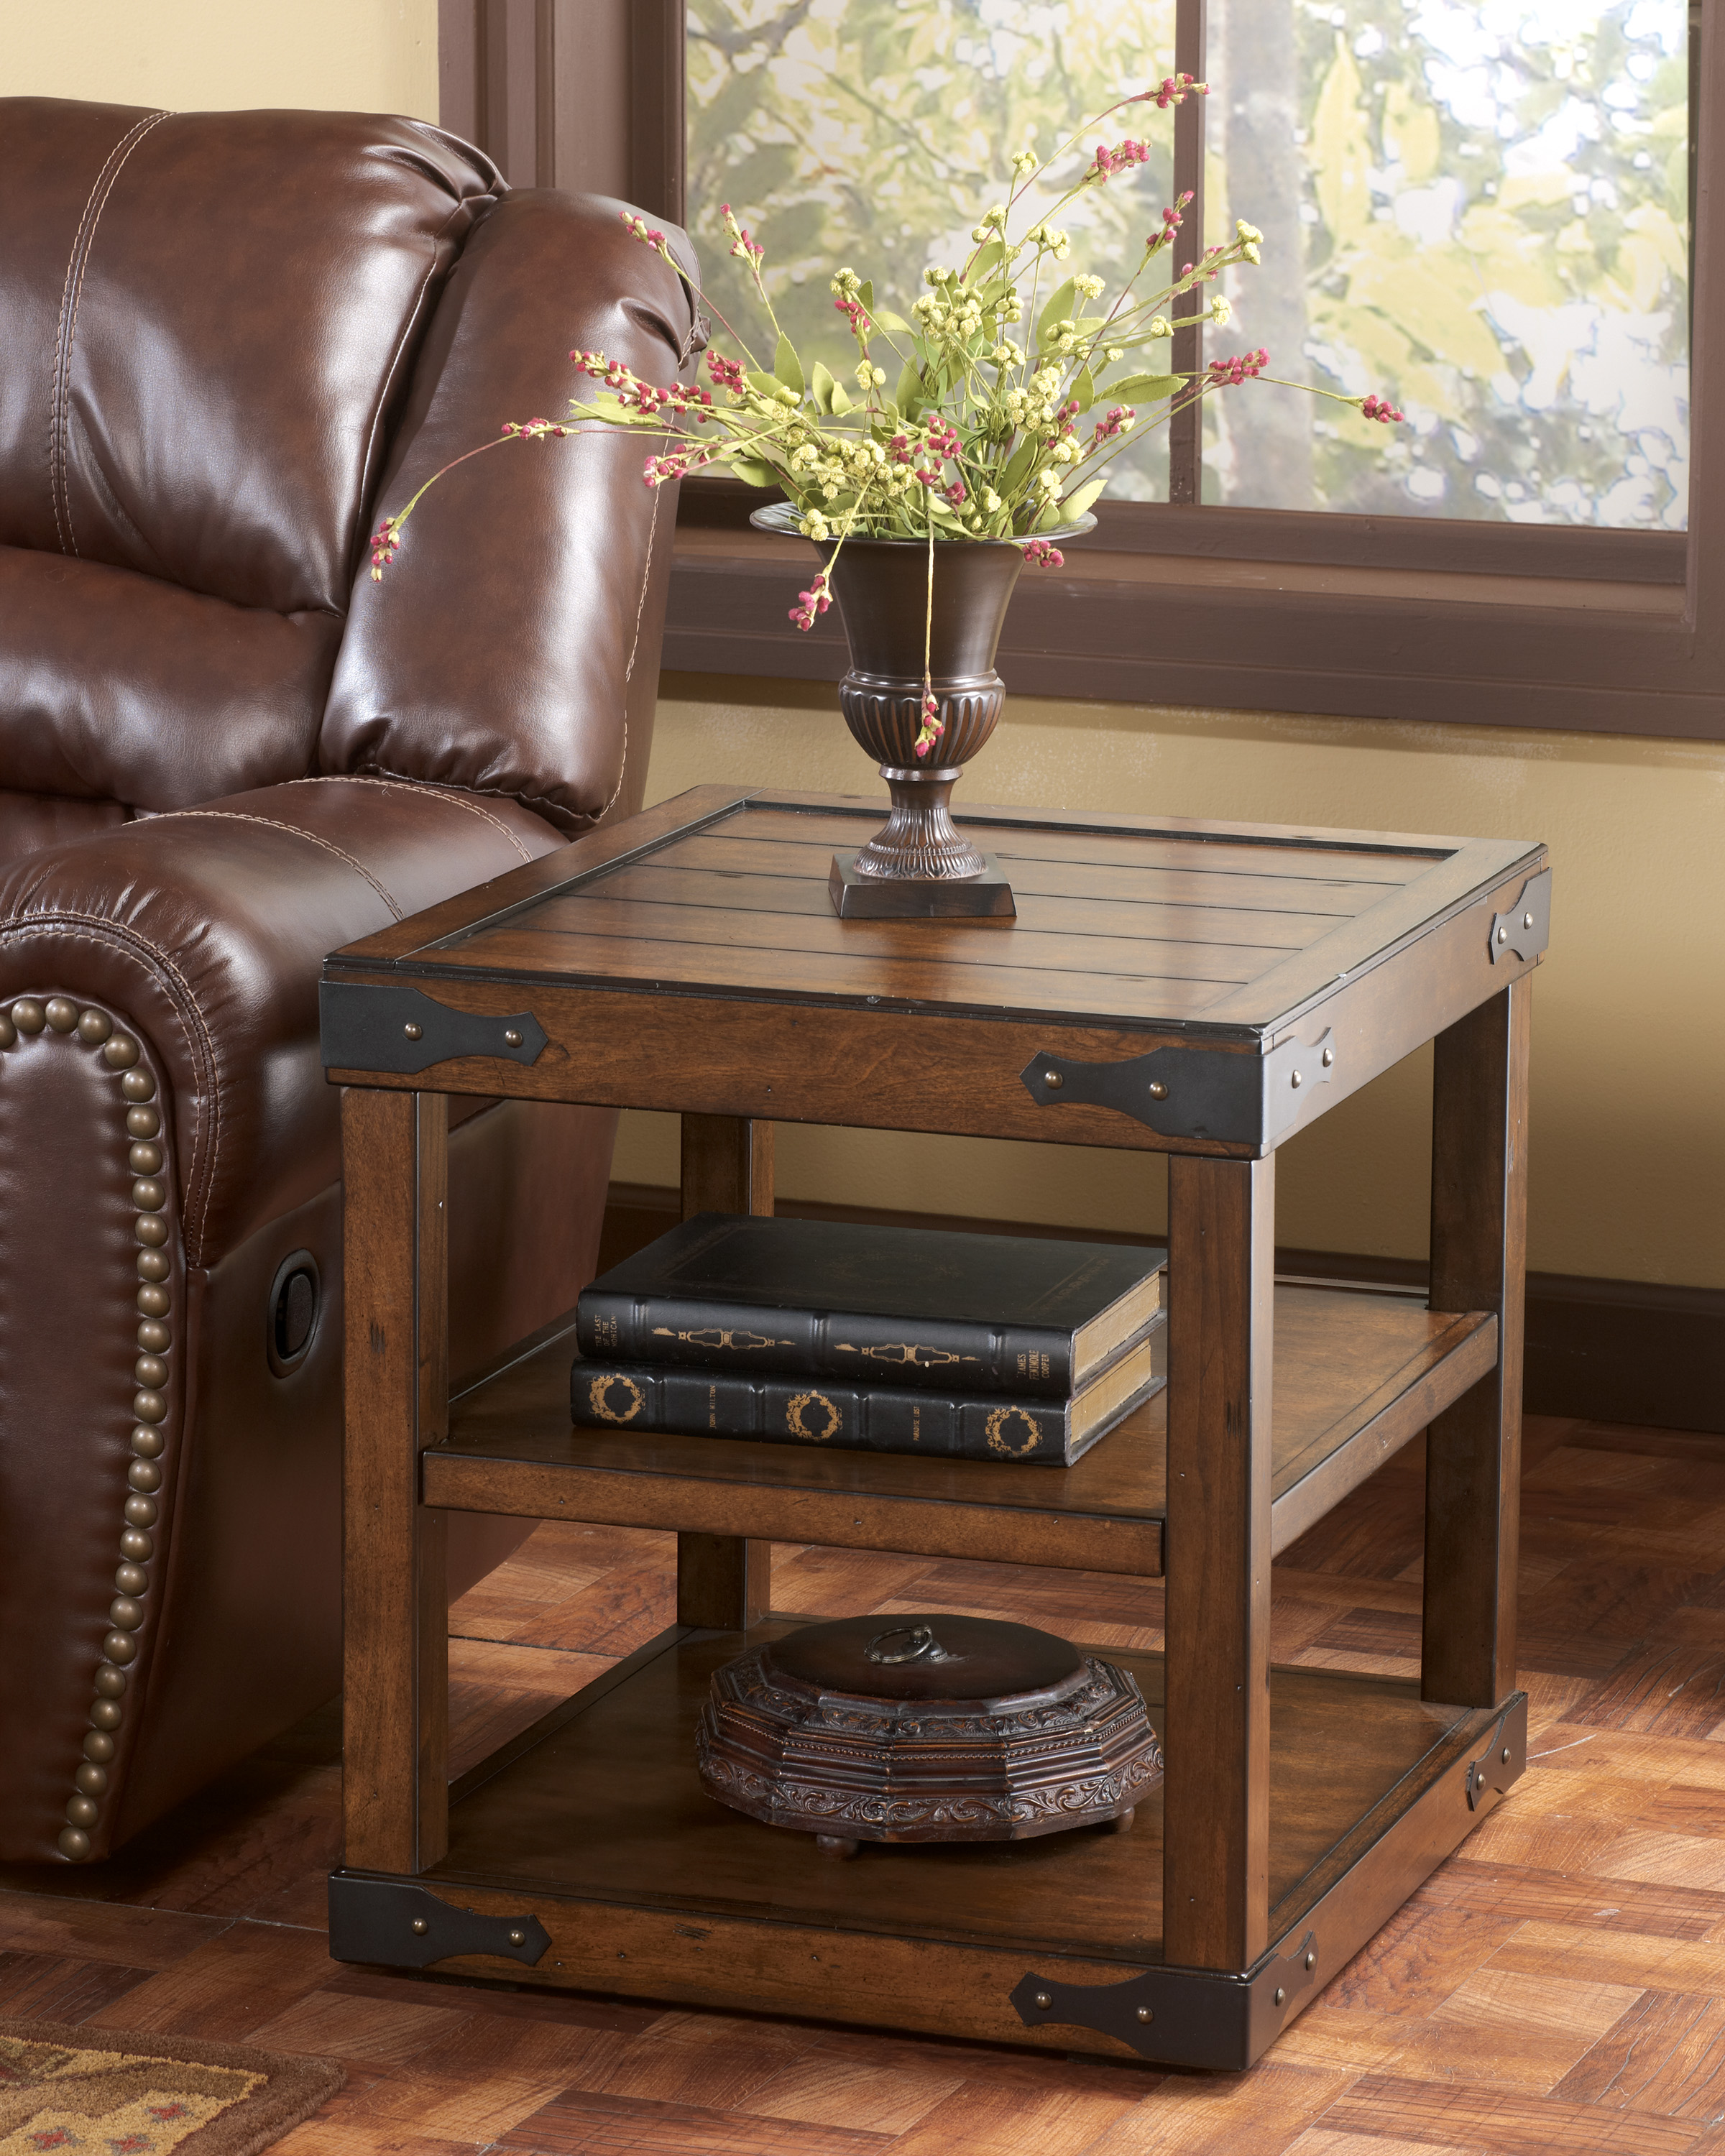 unconditional end table ideas creative home design insider diy round tures magnolia bedroom riverside harmony glass top replacement napolis rustic gray hardware patio loungers dog